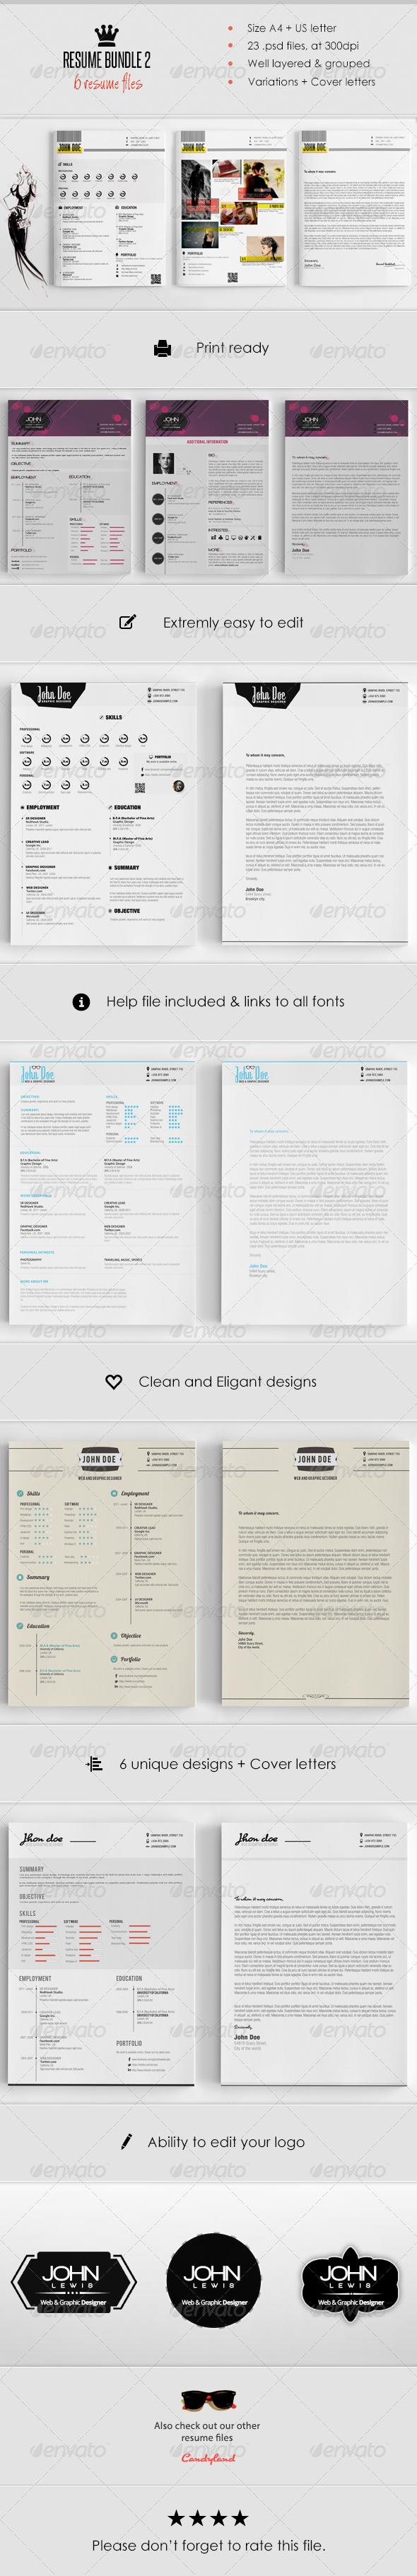 Resume Bundle (6 in 1) - Resumes Stationery